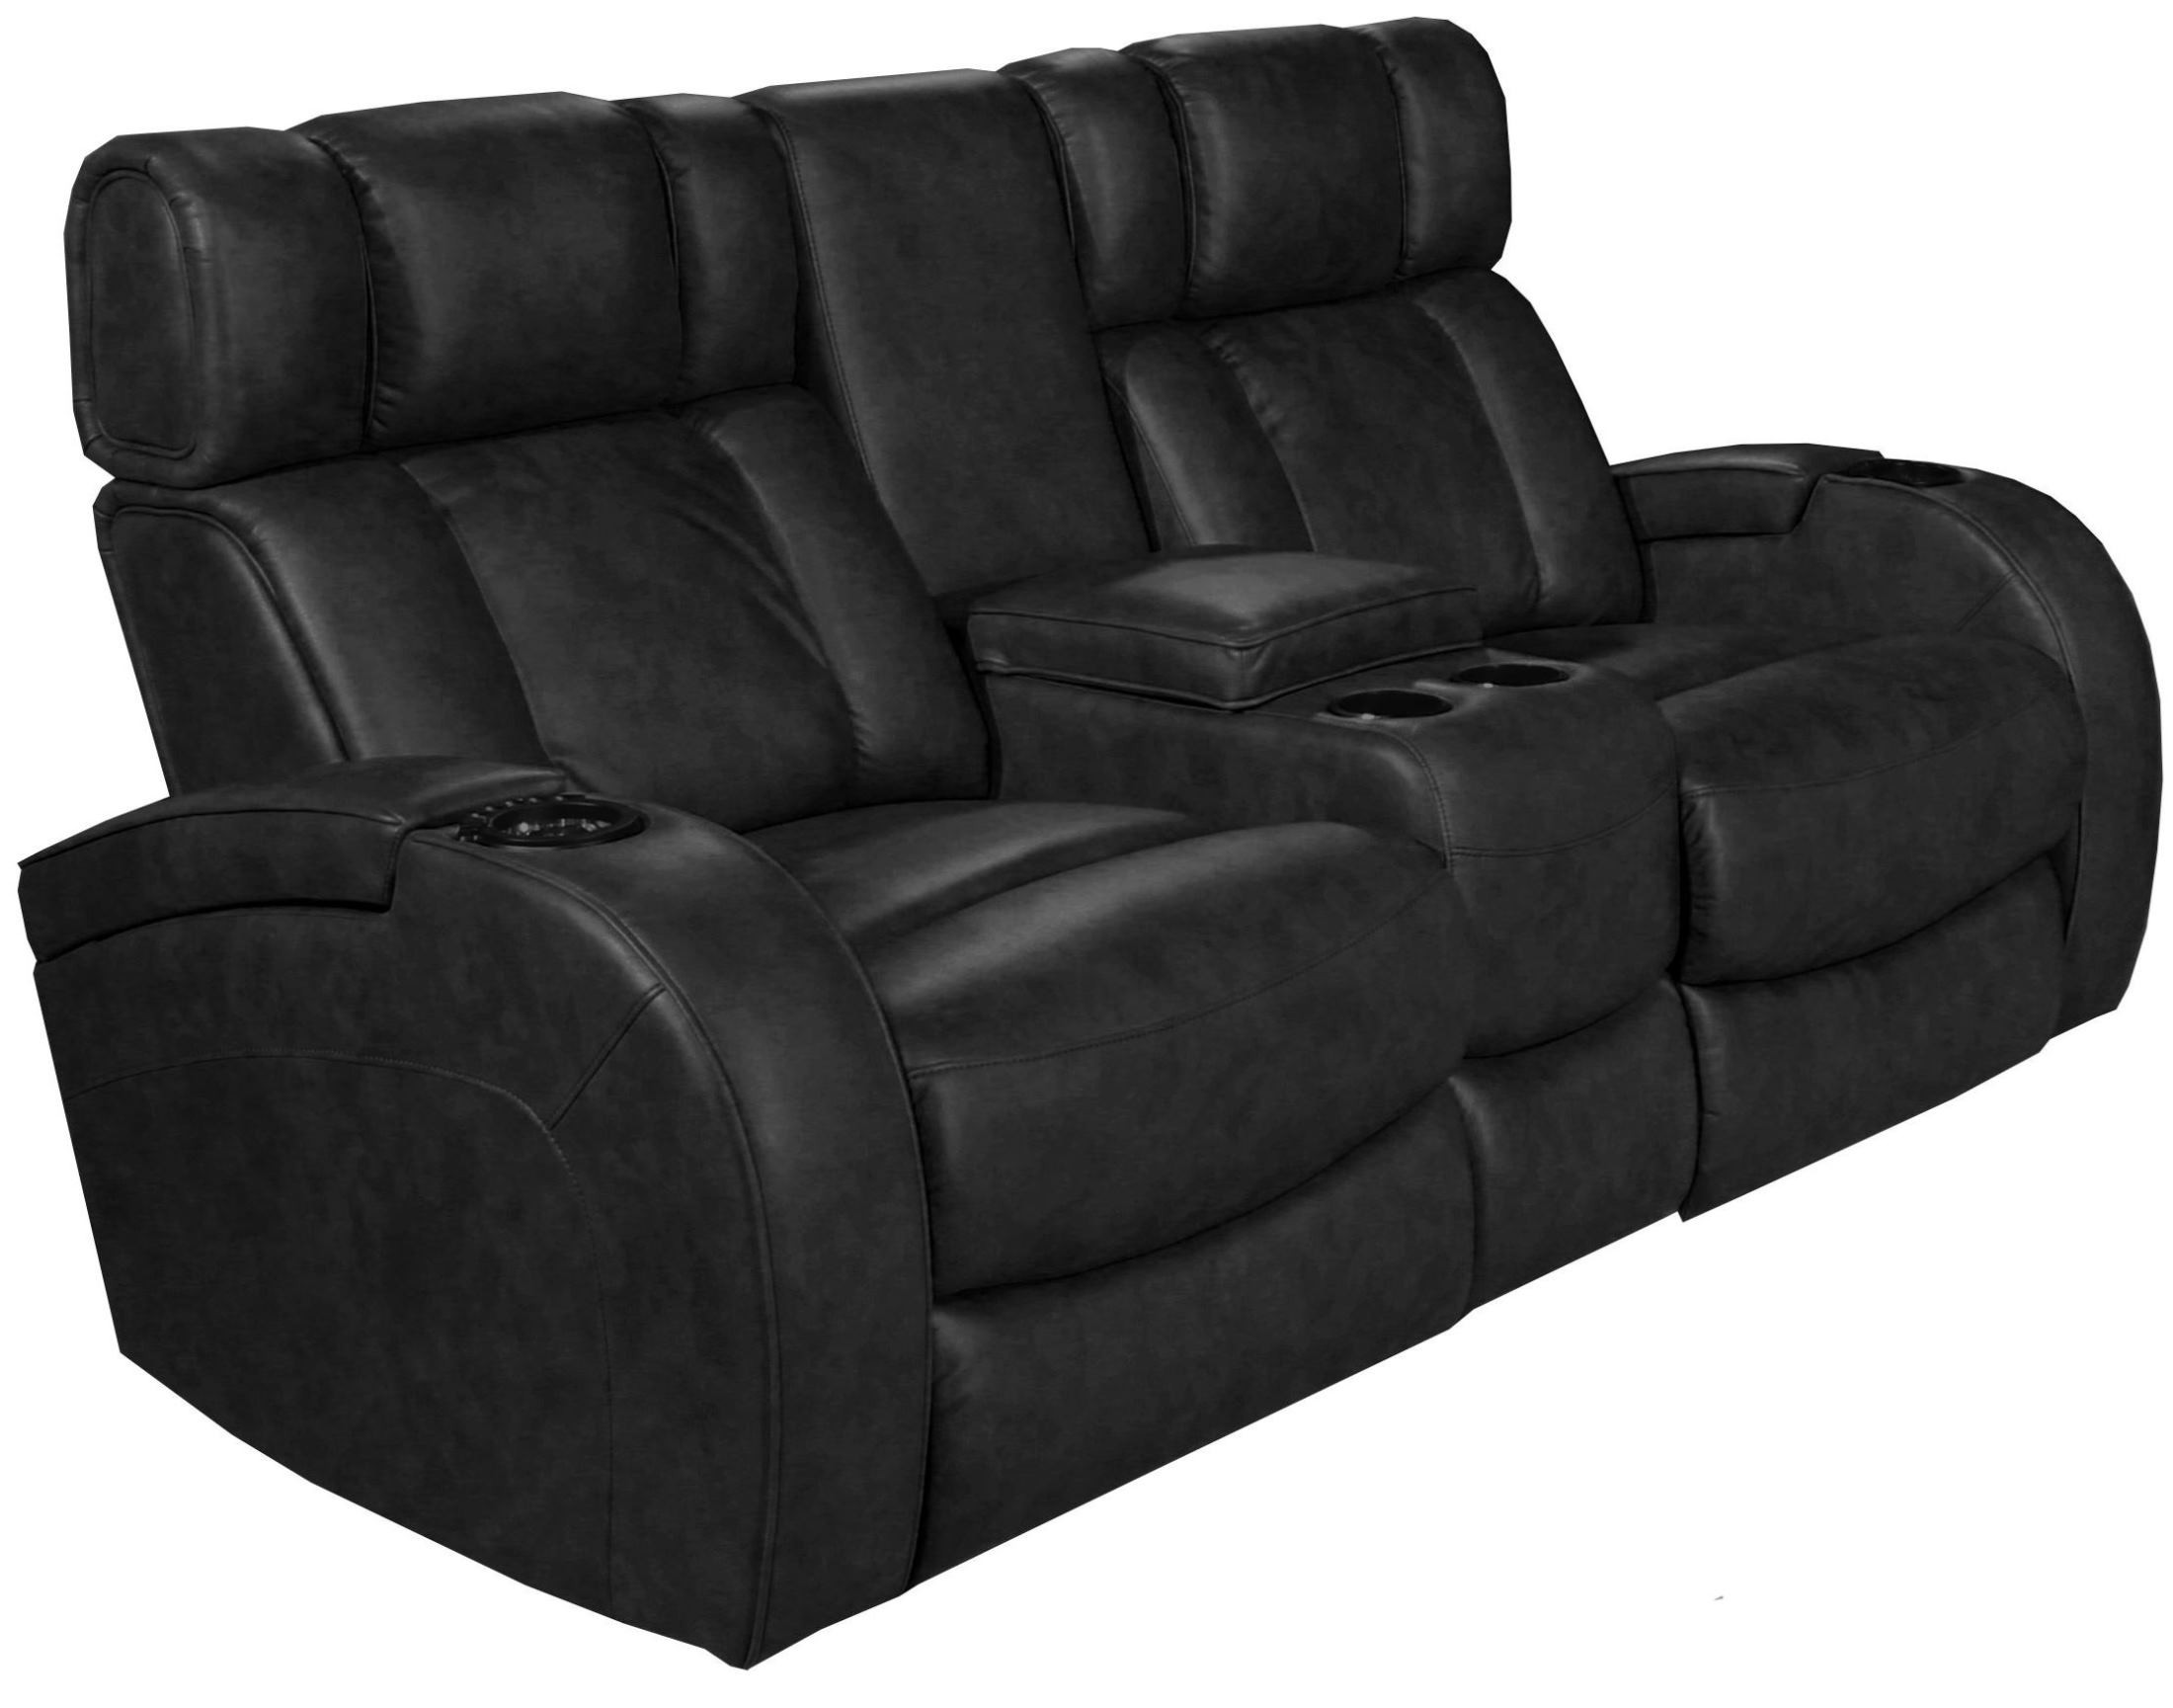 Andromeda Black Leather Gel Power Reclining Loveseat From Rowone Coleman Furniture